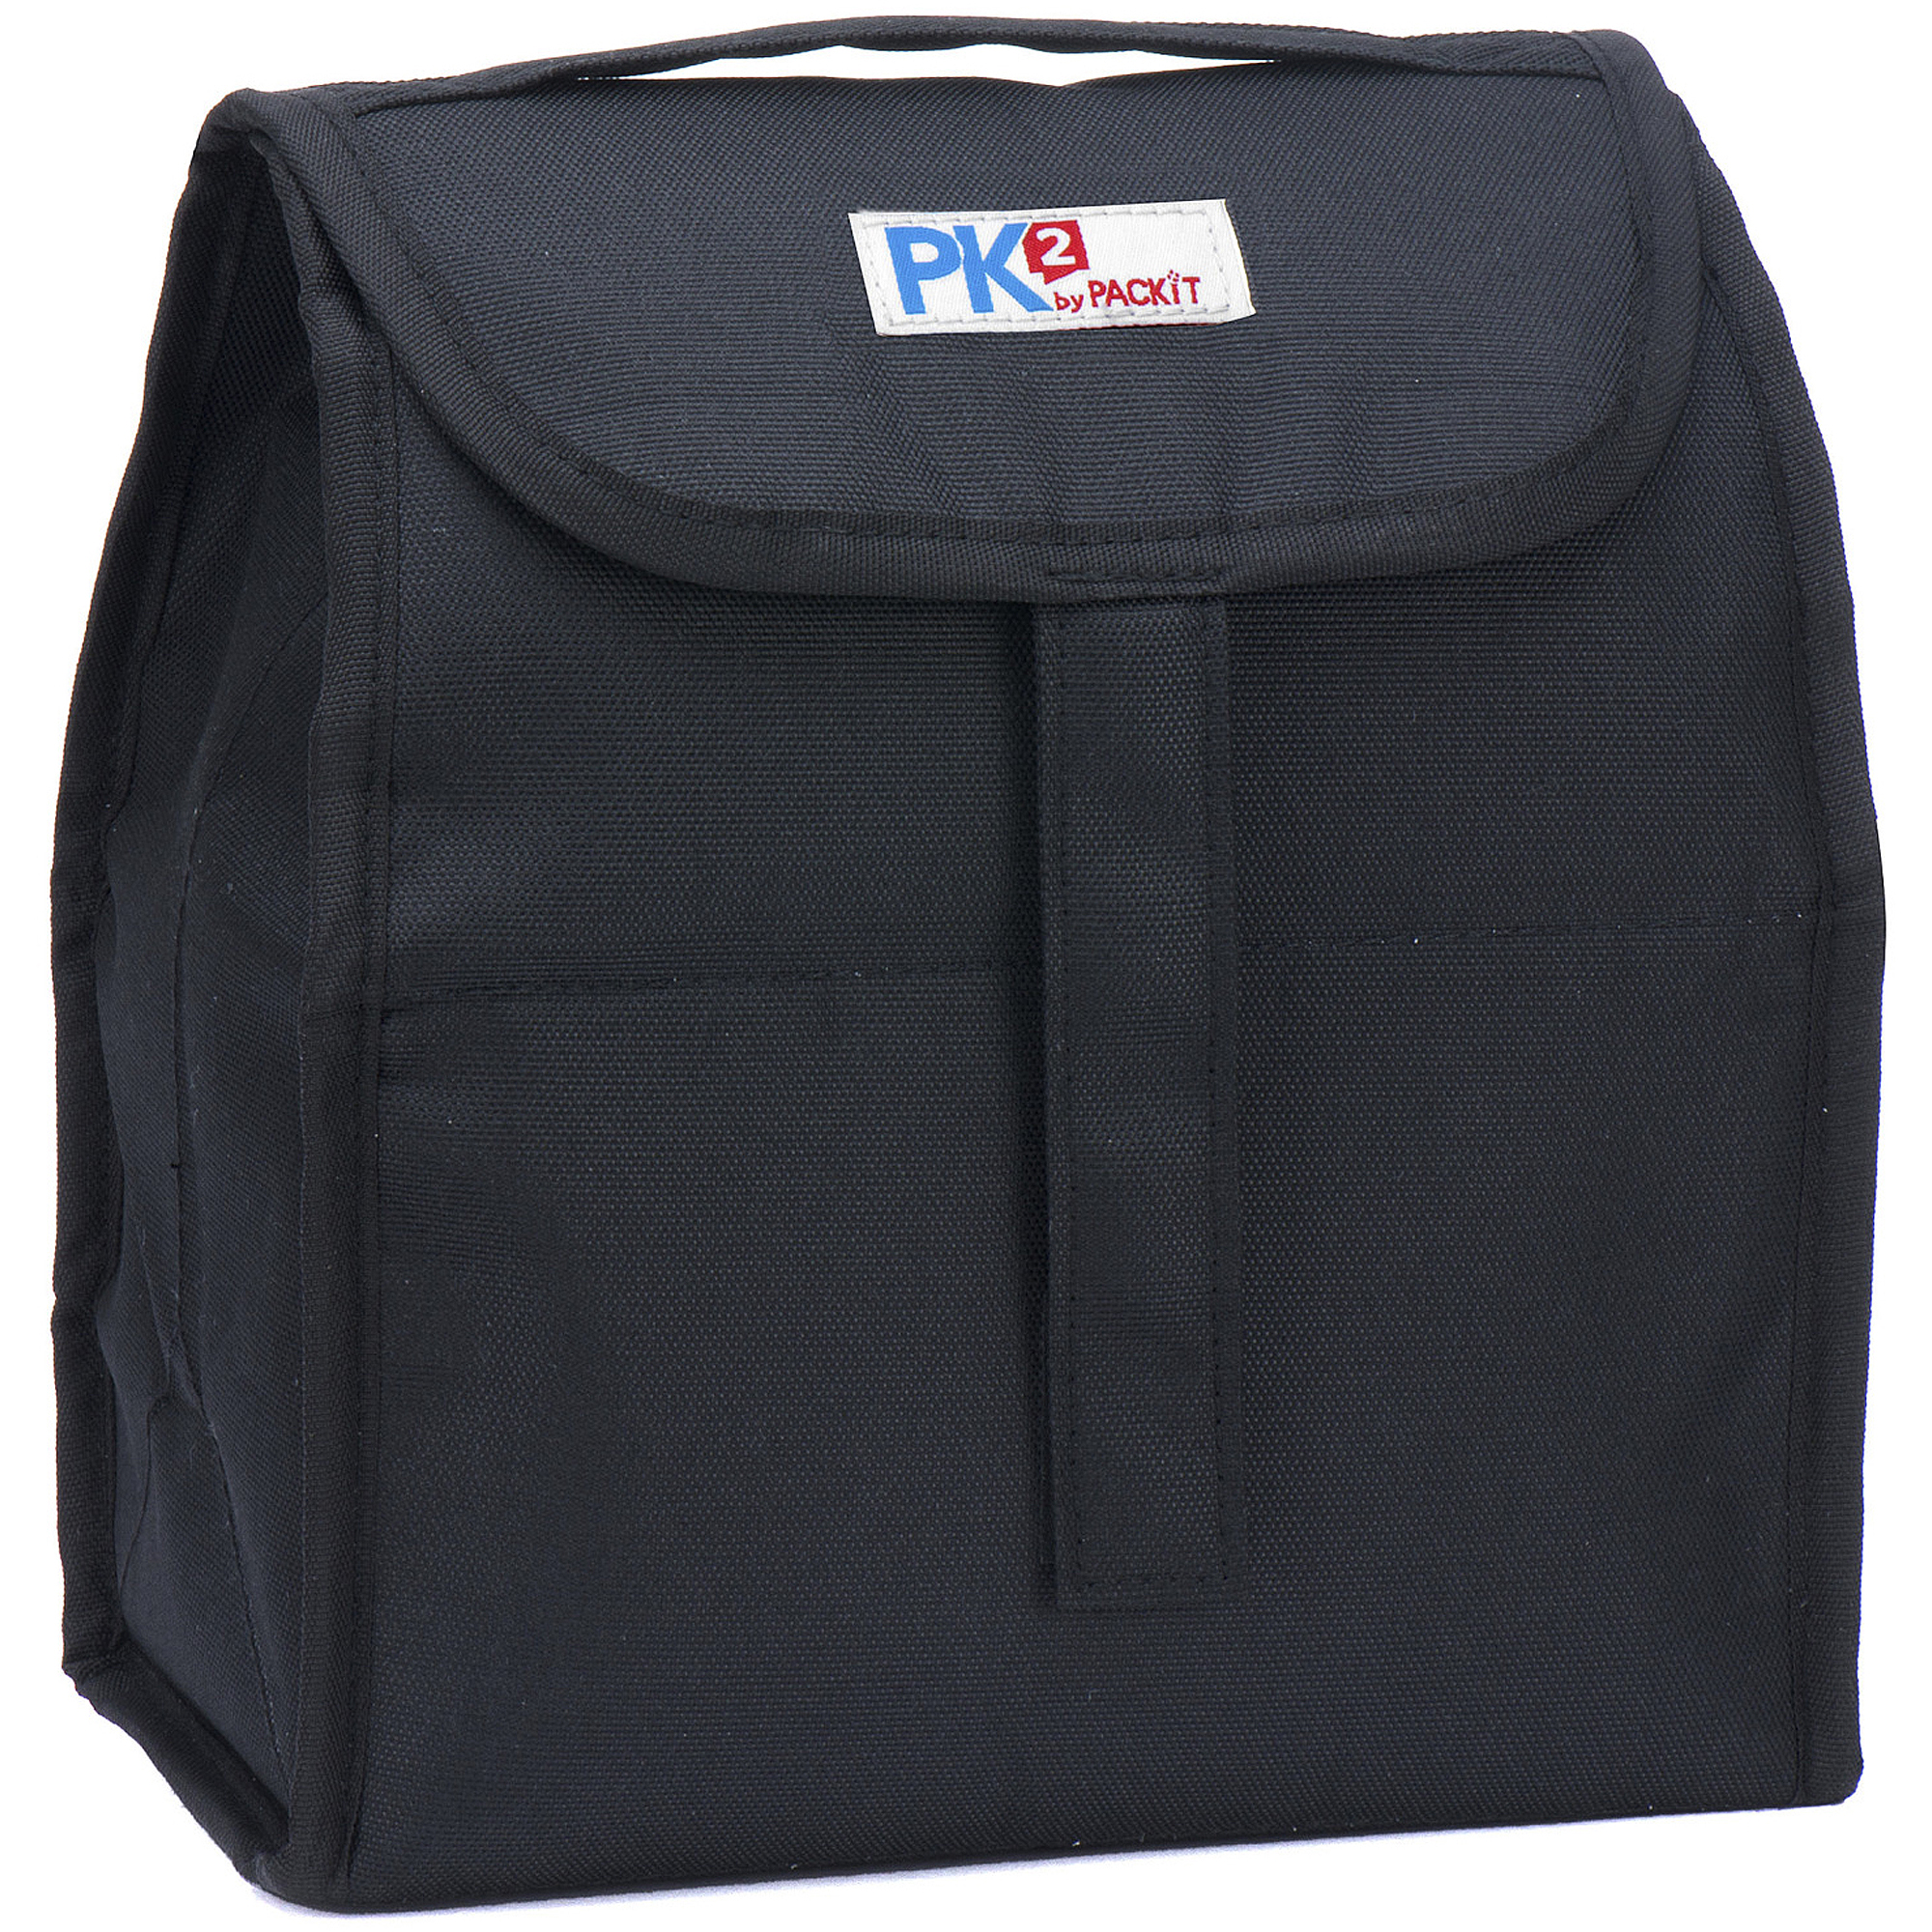 PK2 by PackIt Lunch Bag, Multiple Colors